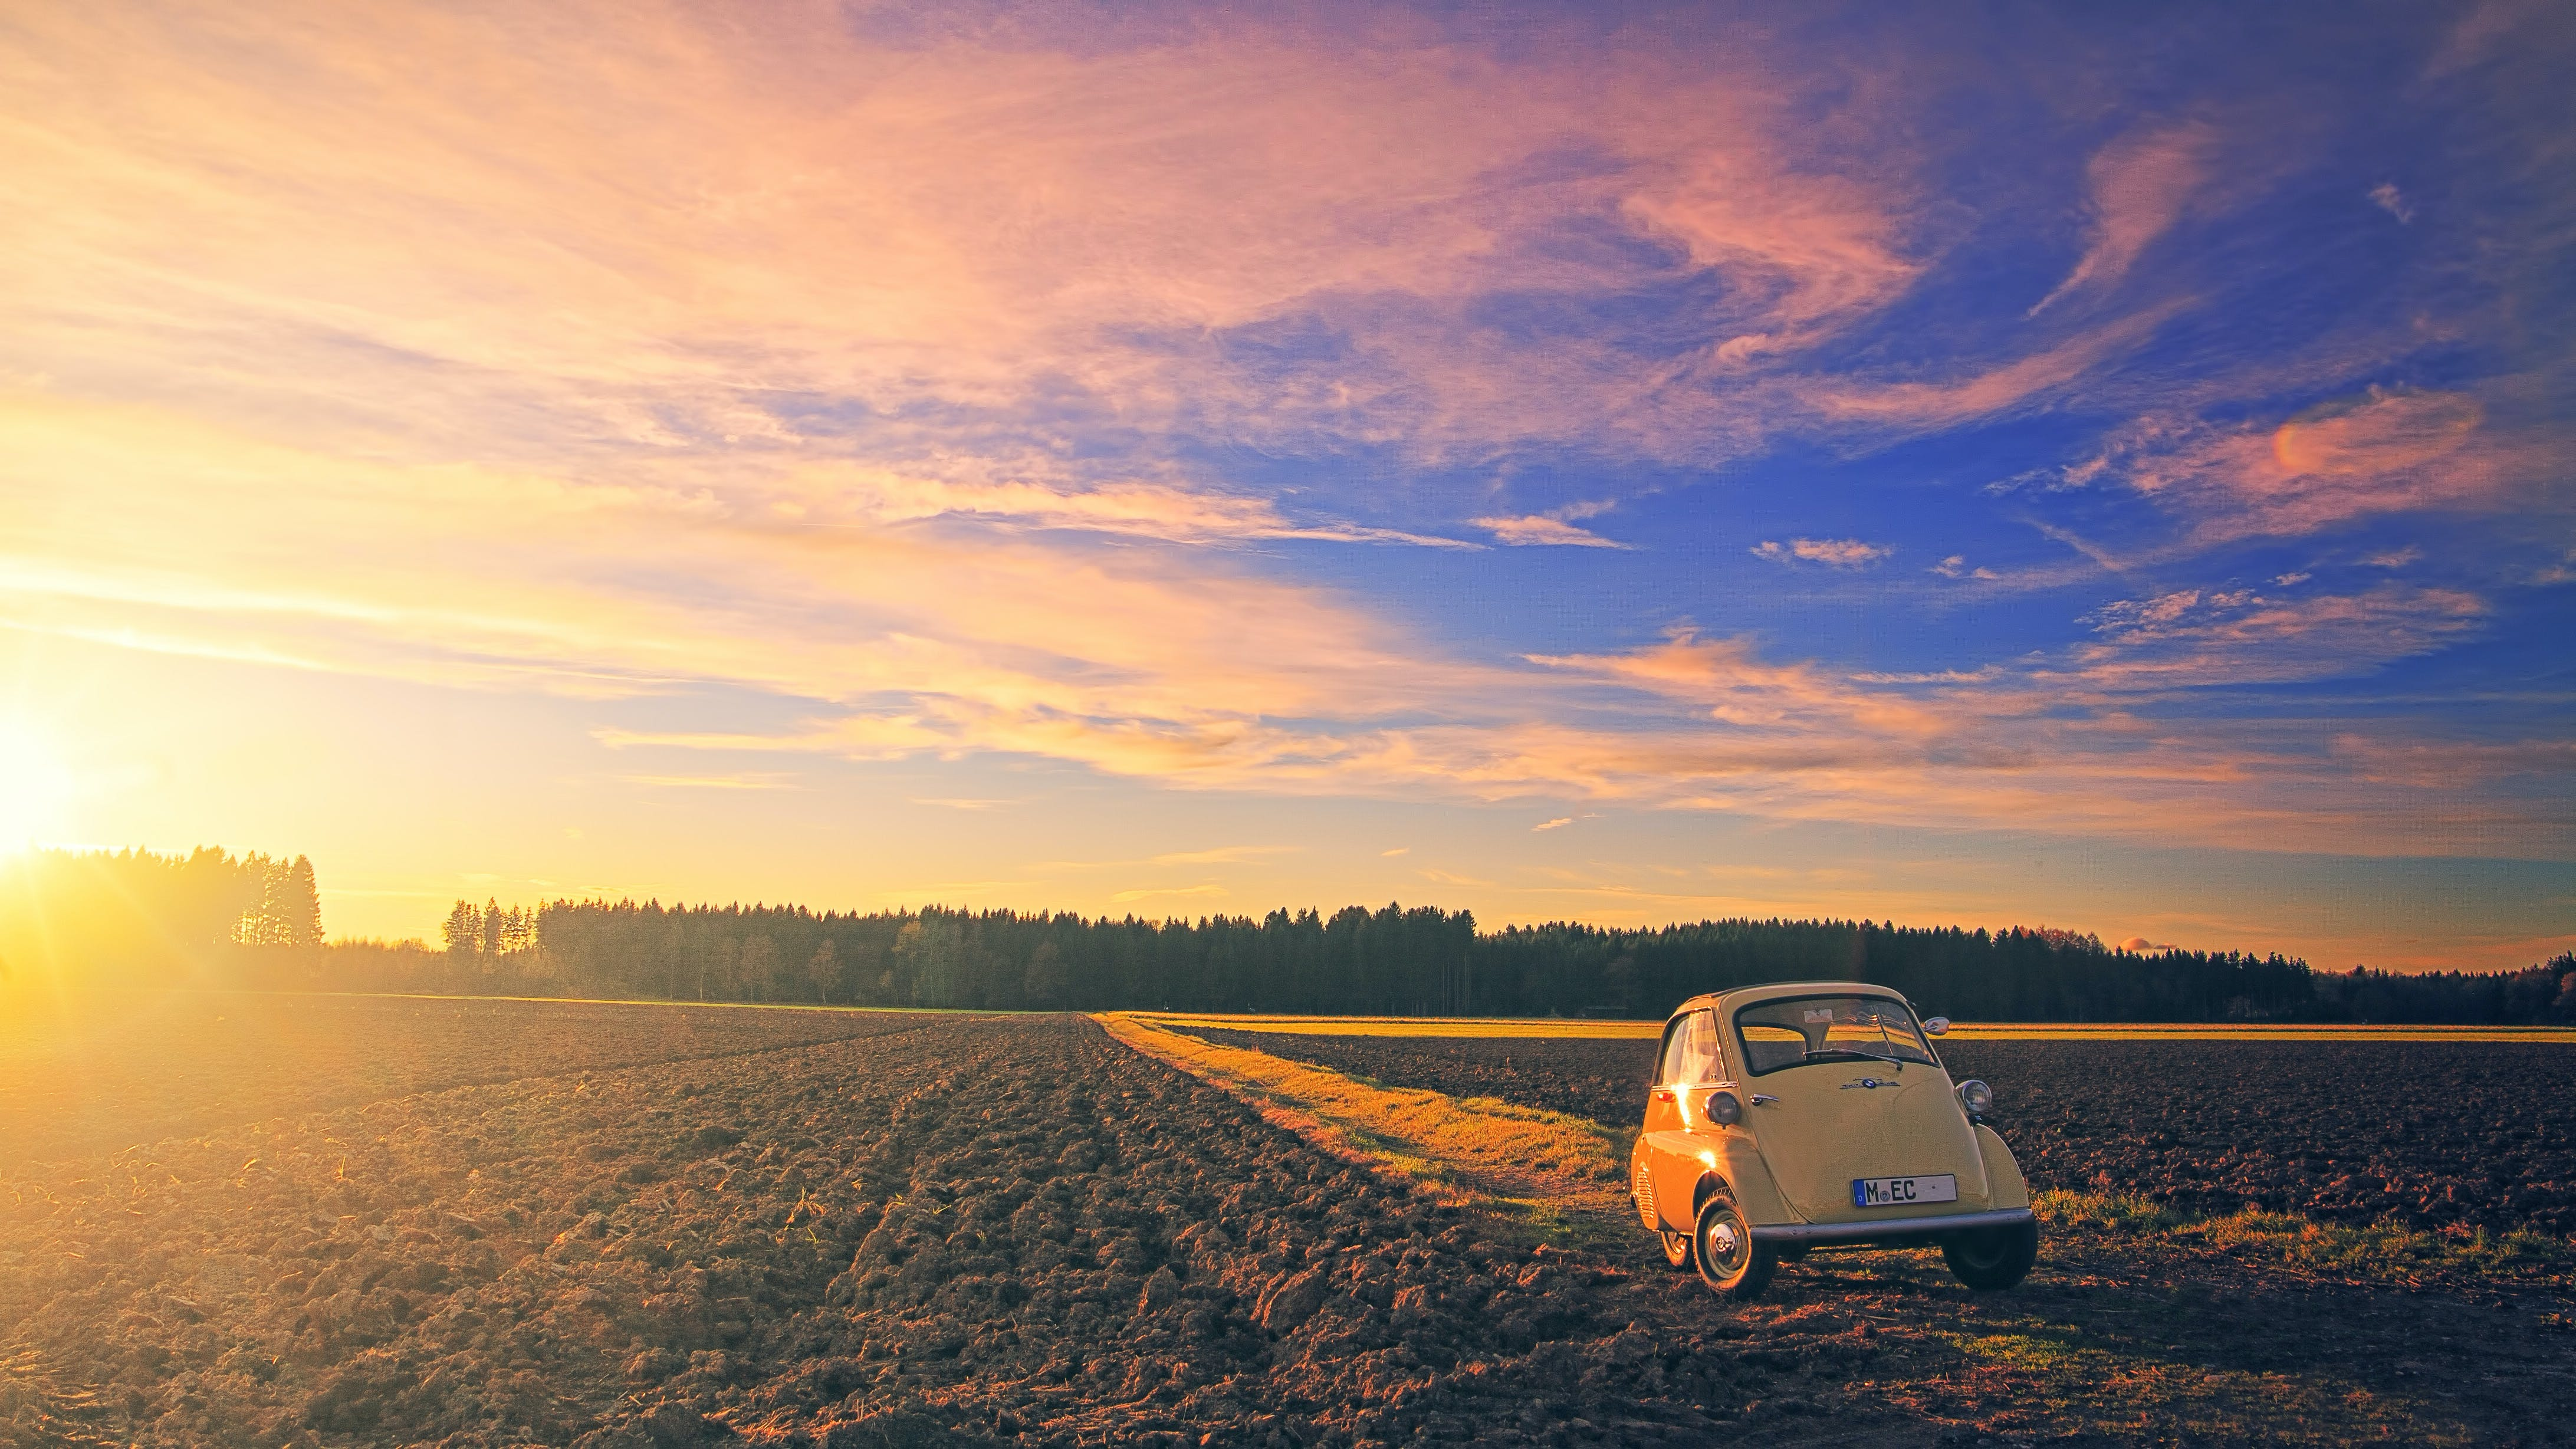 Yellow Classic Car Parked on Field Under Cloudy Sky at Golden Hour